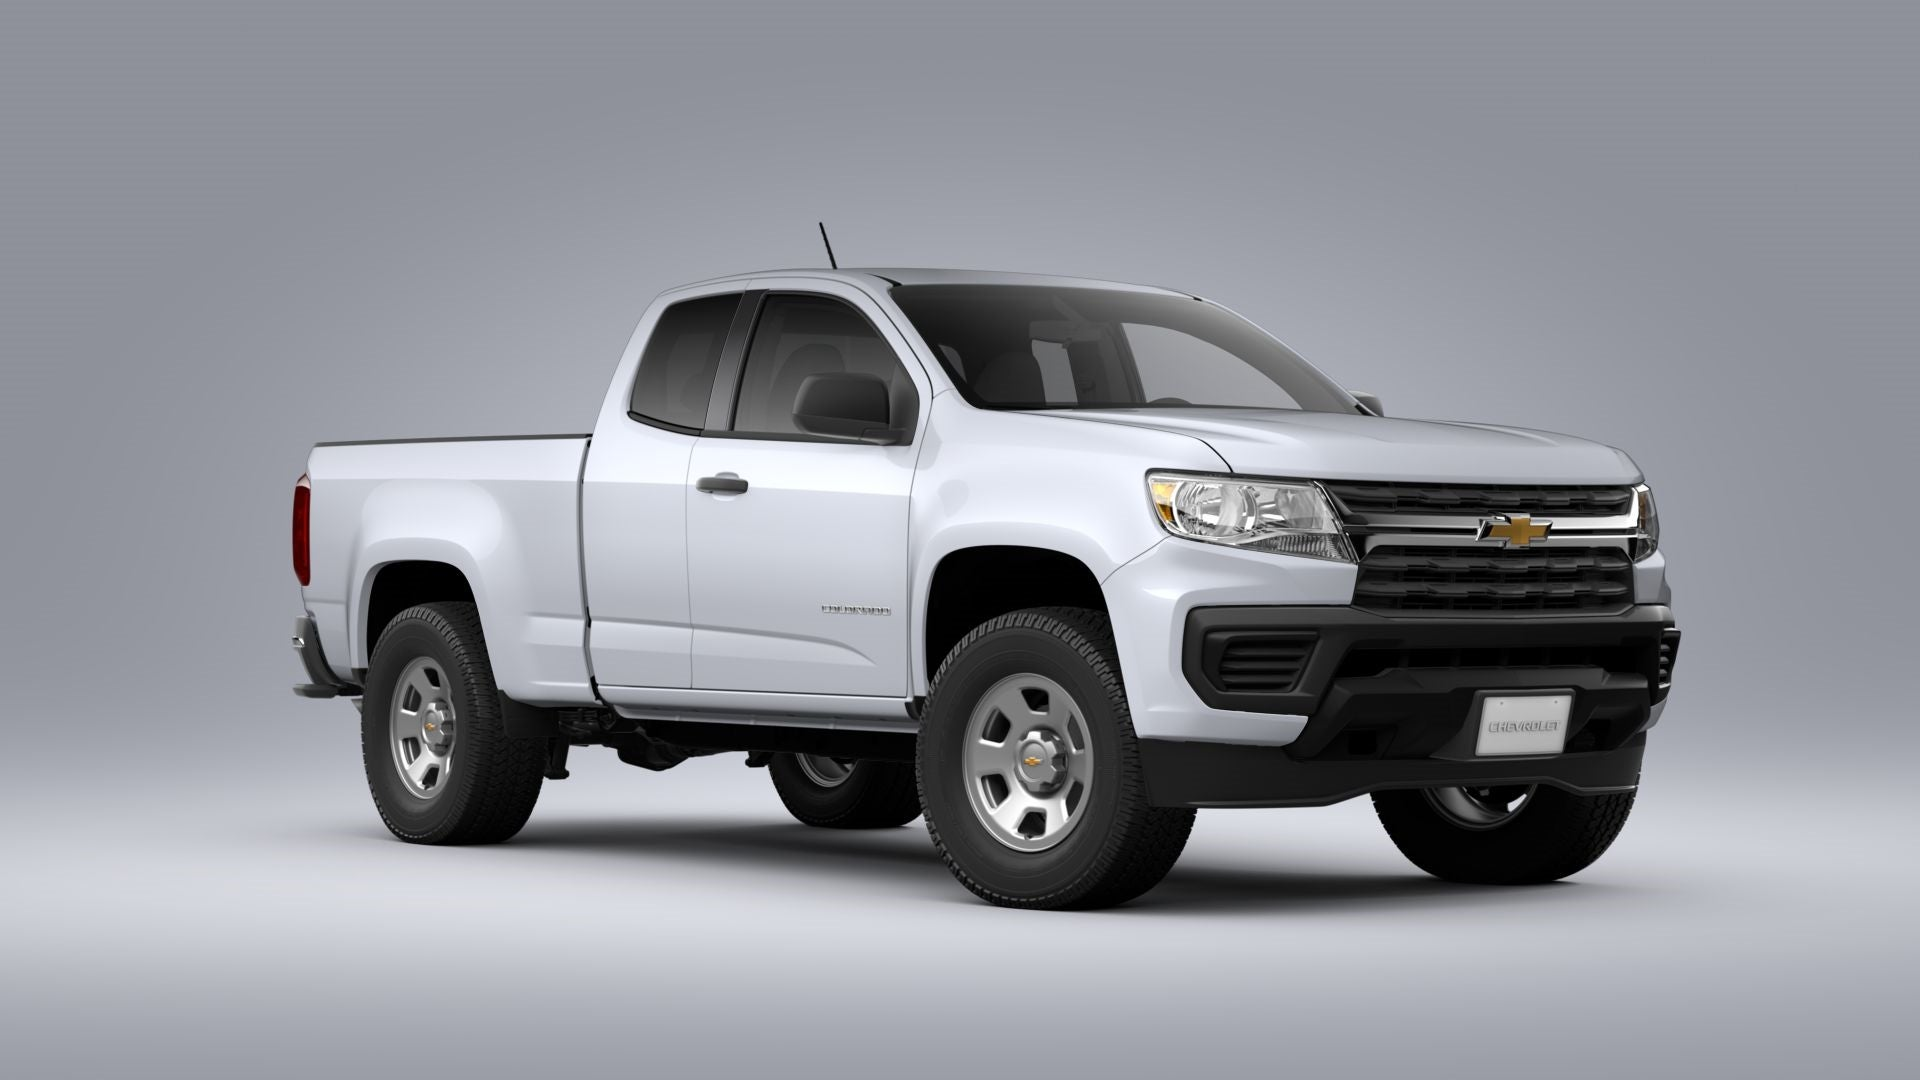 2021 Chevrolet Colorado Work Truck